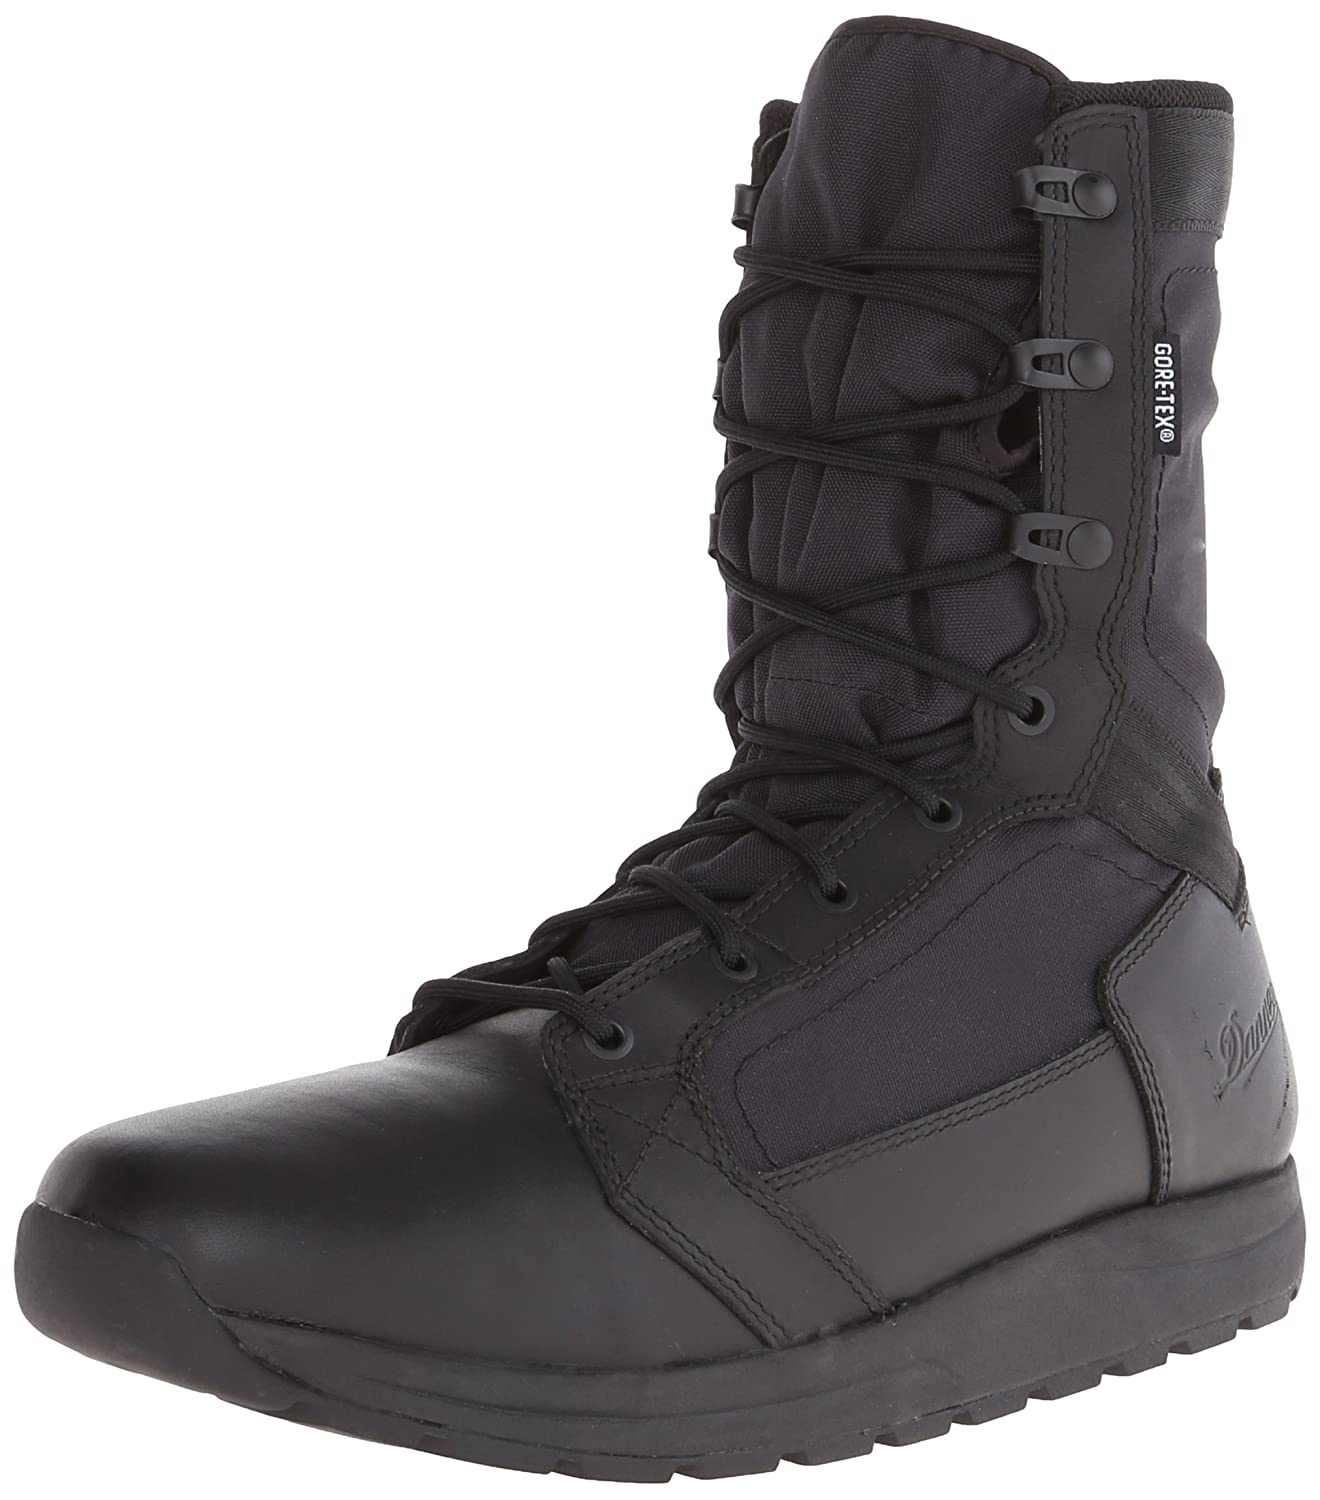 "Danner Men's Tachyon 8"" GTX Duty Boot Tachyon 8"